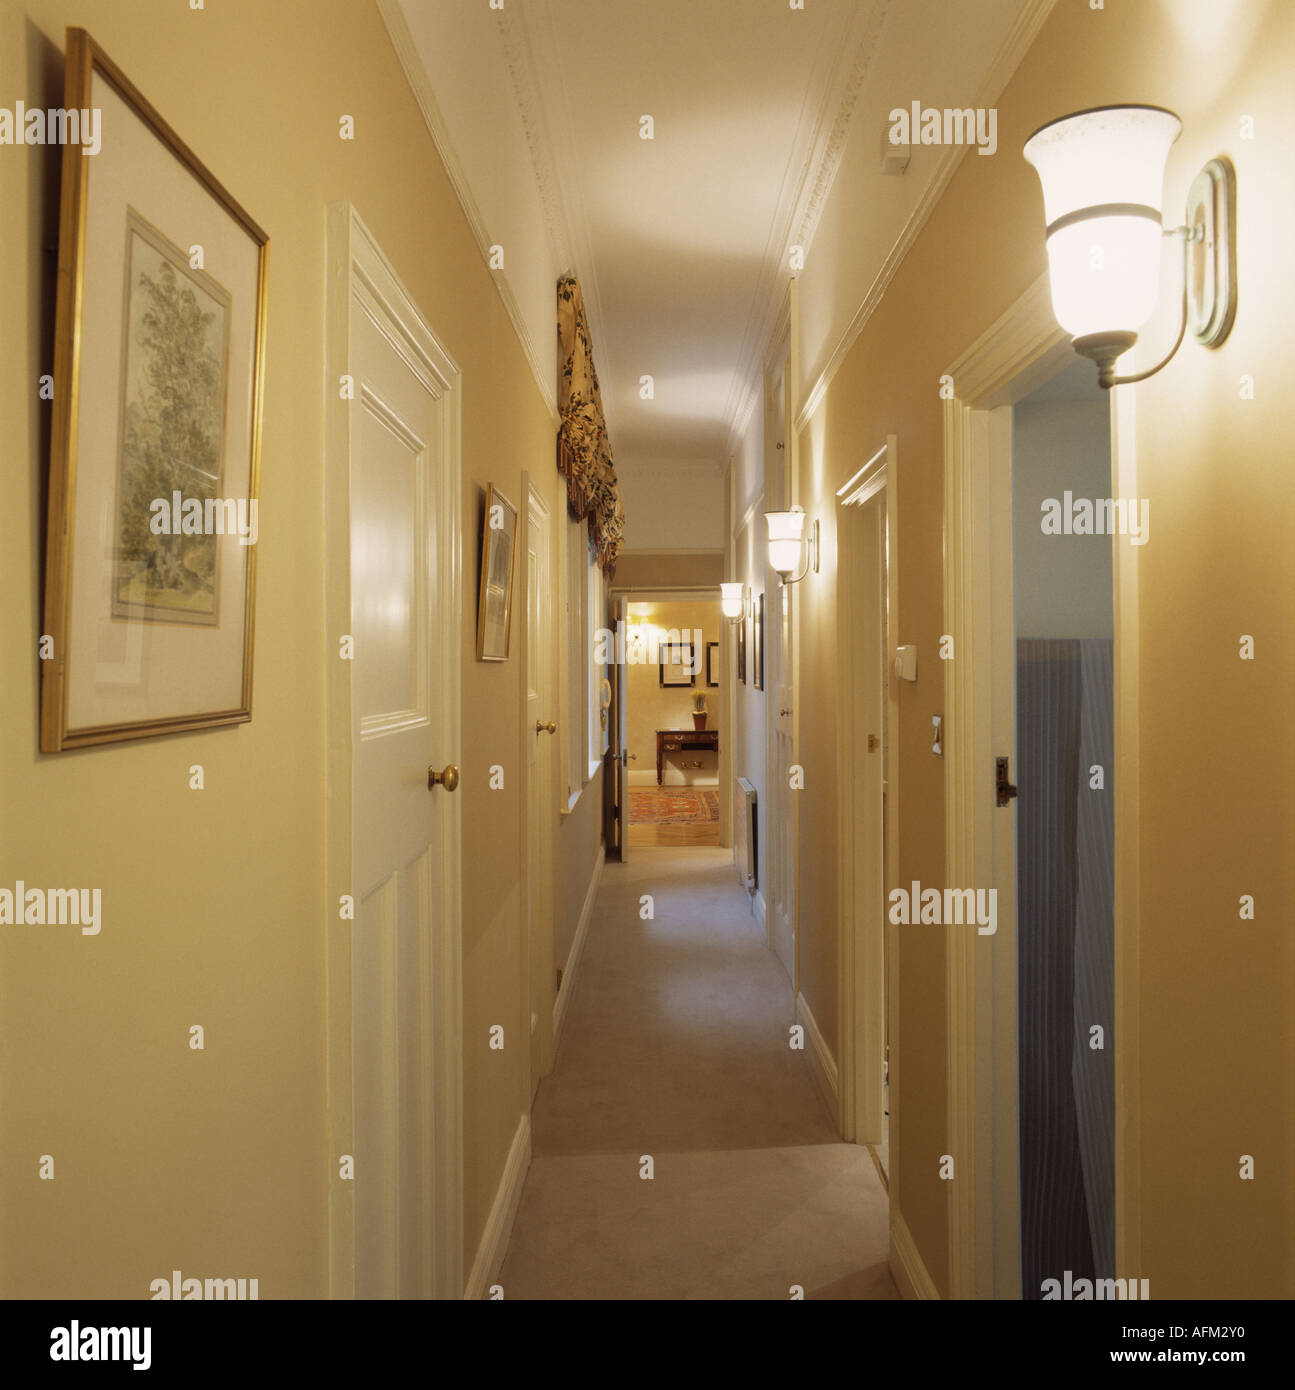 Lighted wall lights in hotel corridor stock photo 7985711 alamy lighted wall lights in hotel corridor mozeypictures Image collections